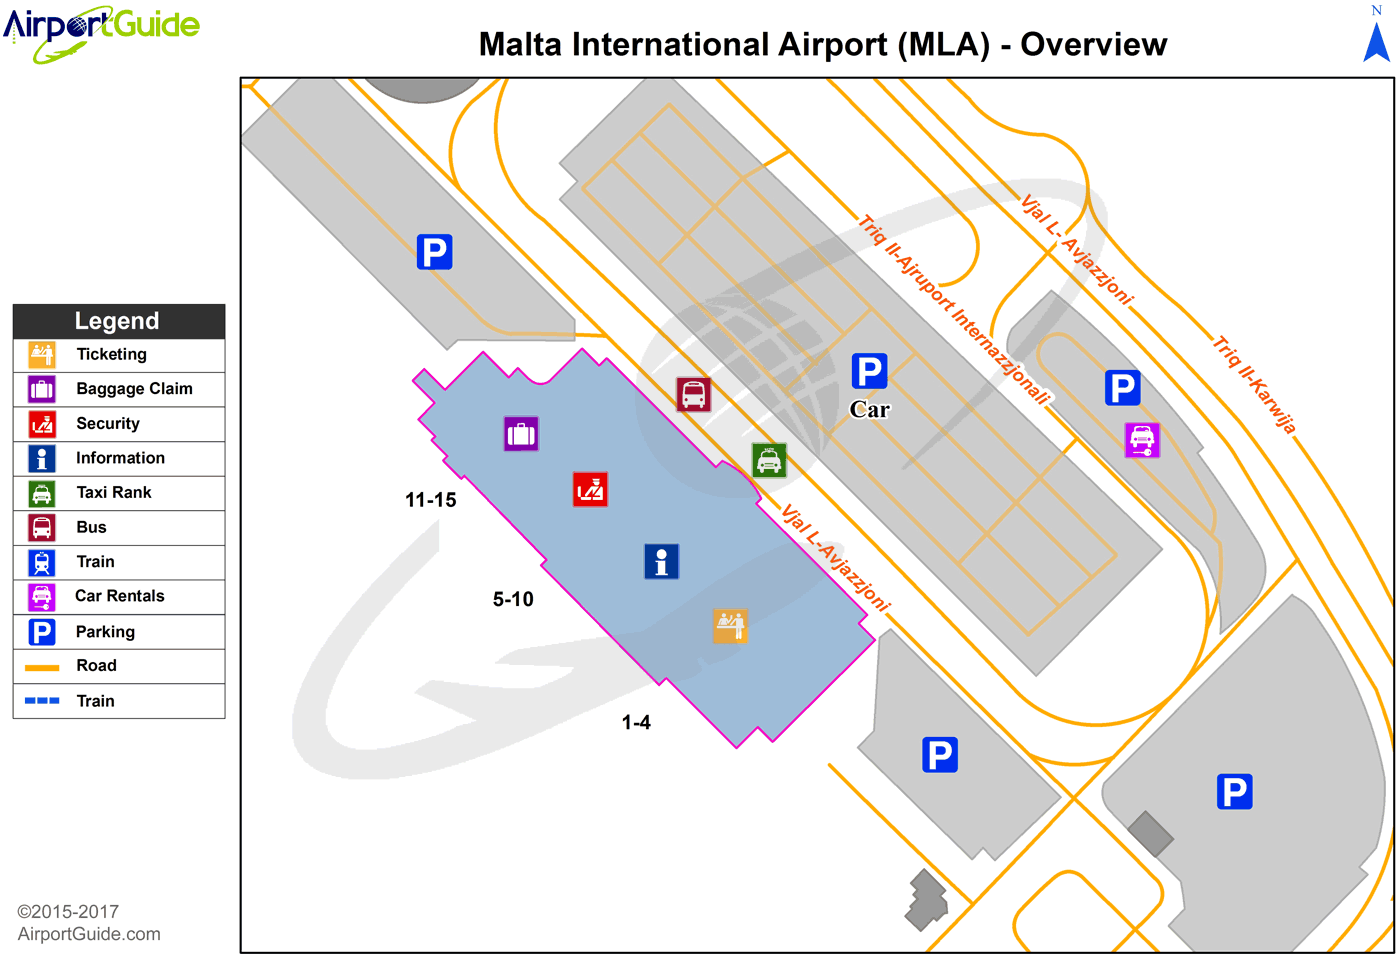 Luqa - Malta International (MLA) Airport Terminal Map - Overview